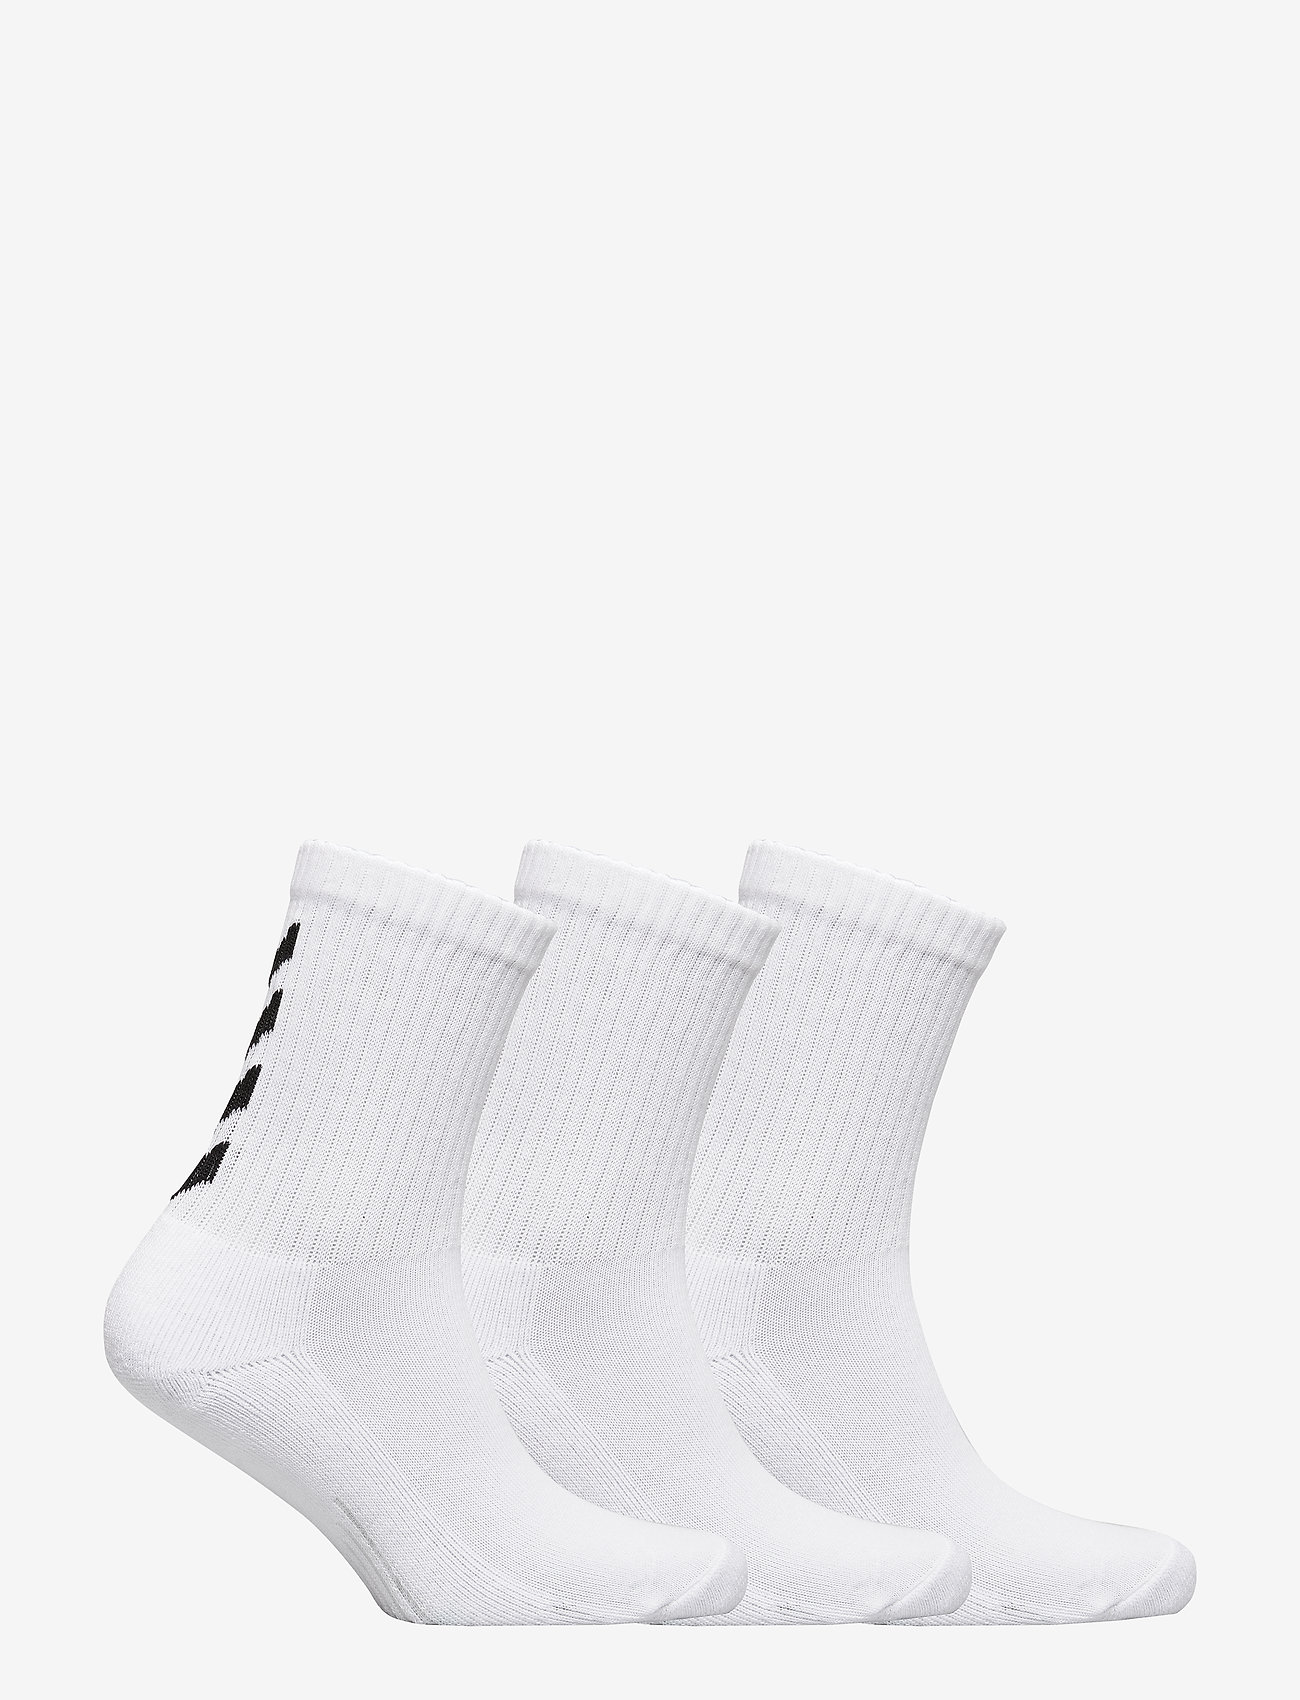 Hummel - FUNDAMENTAL 3-PACK SOCK - regular socks - white - 1